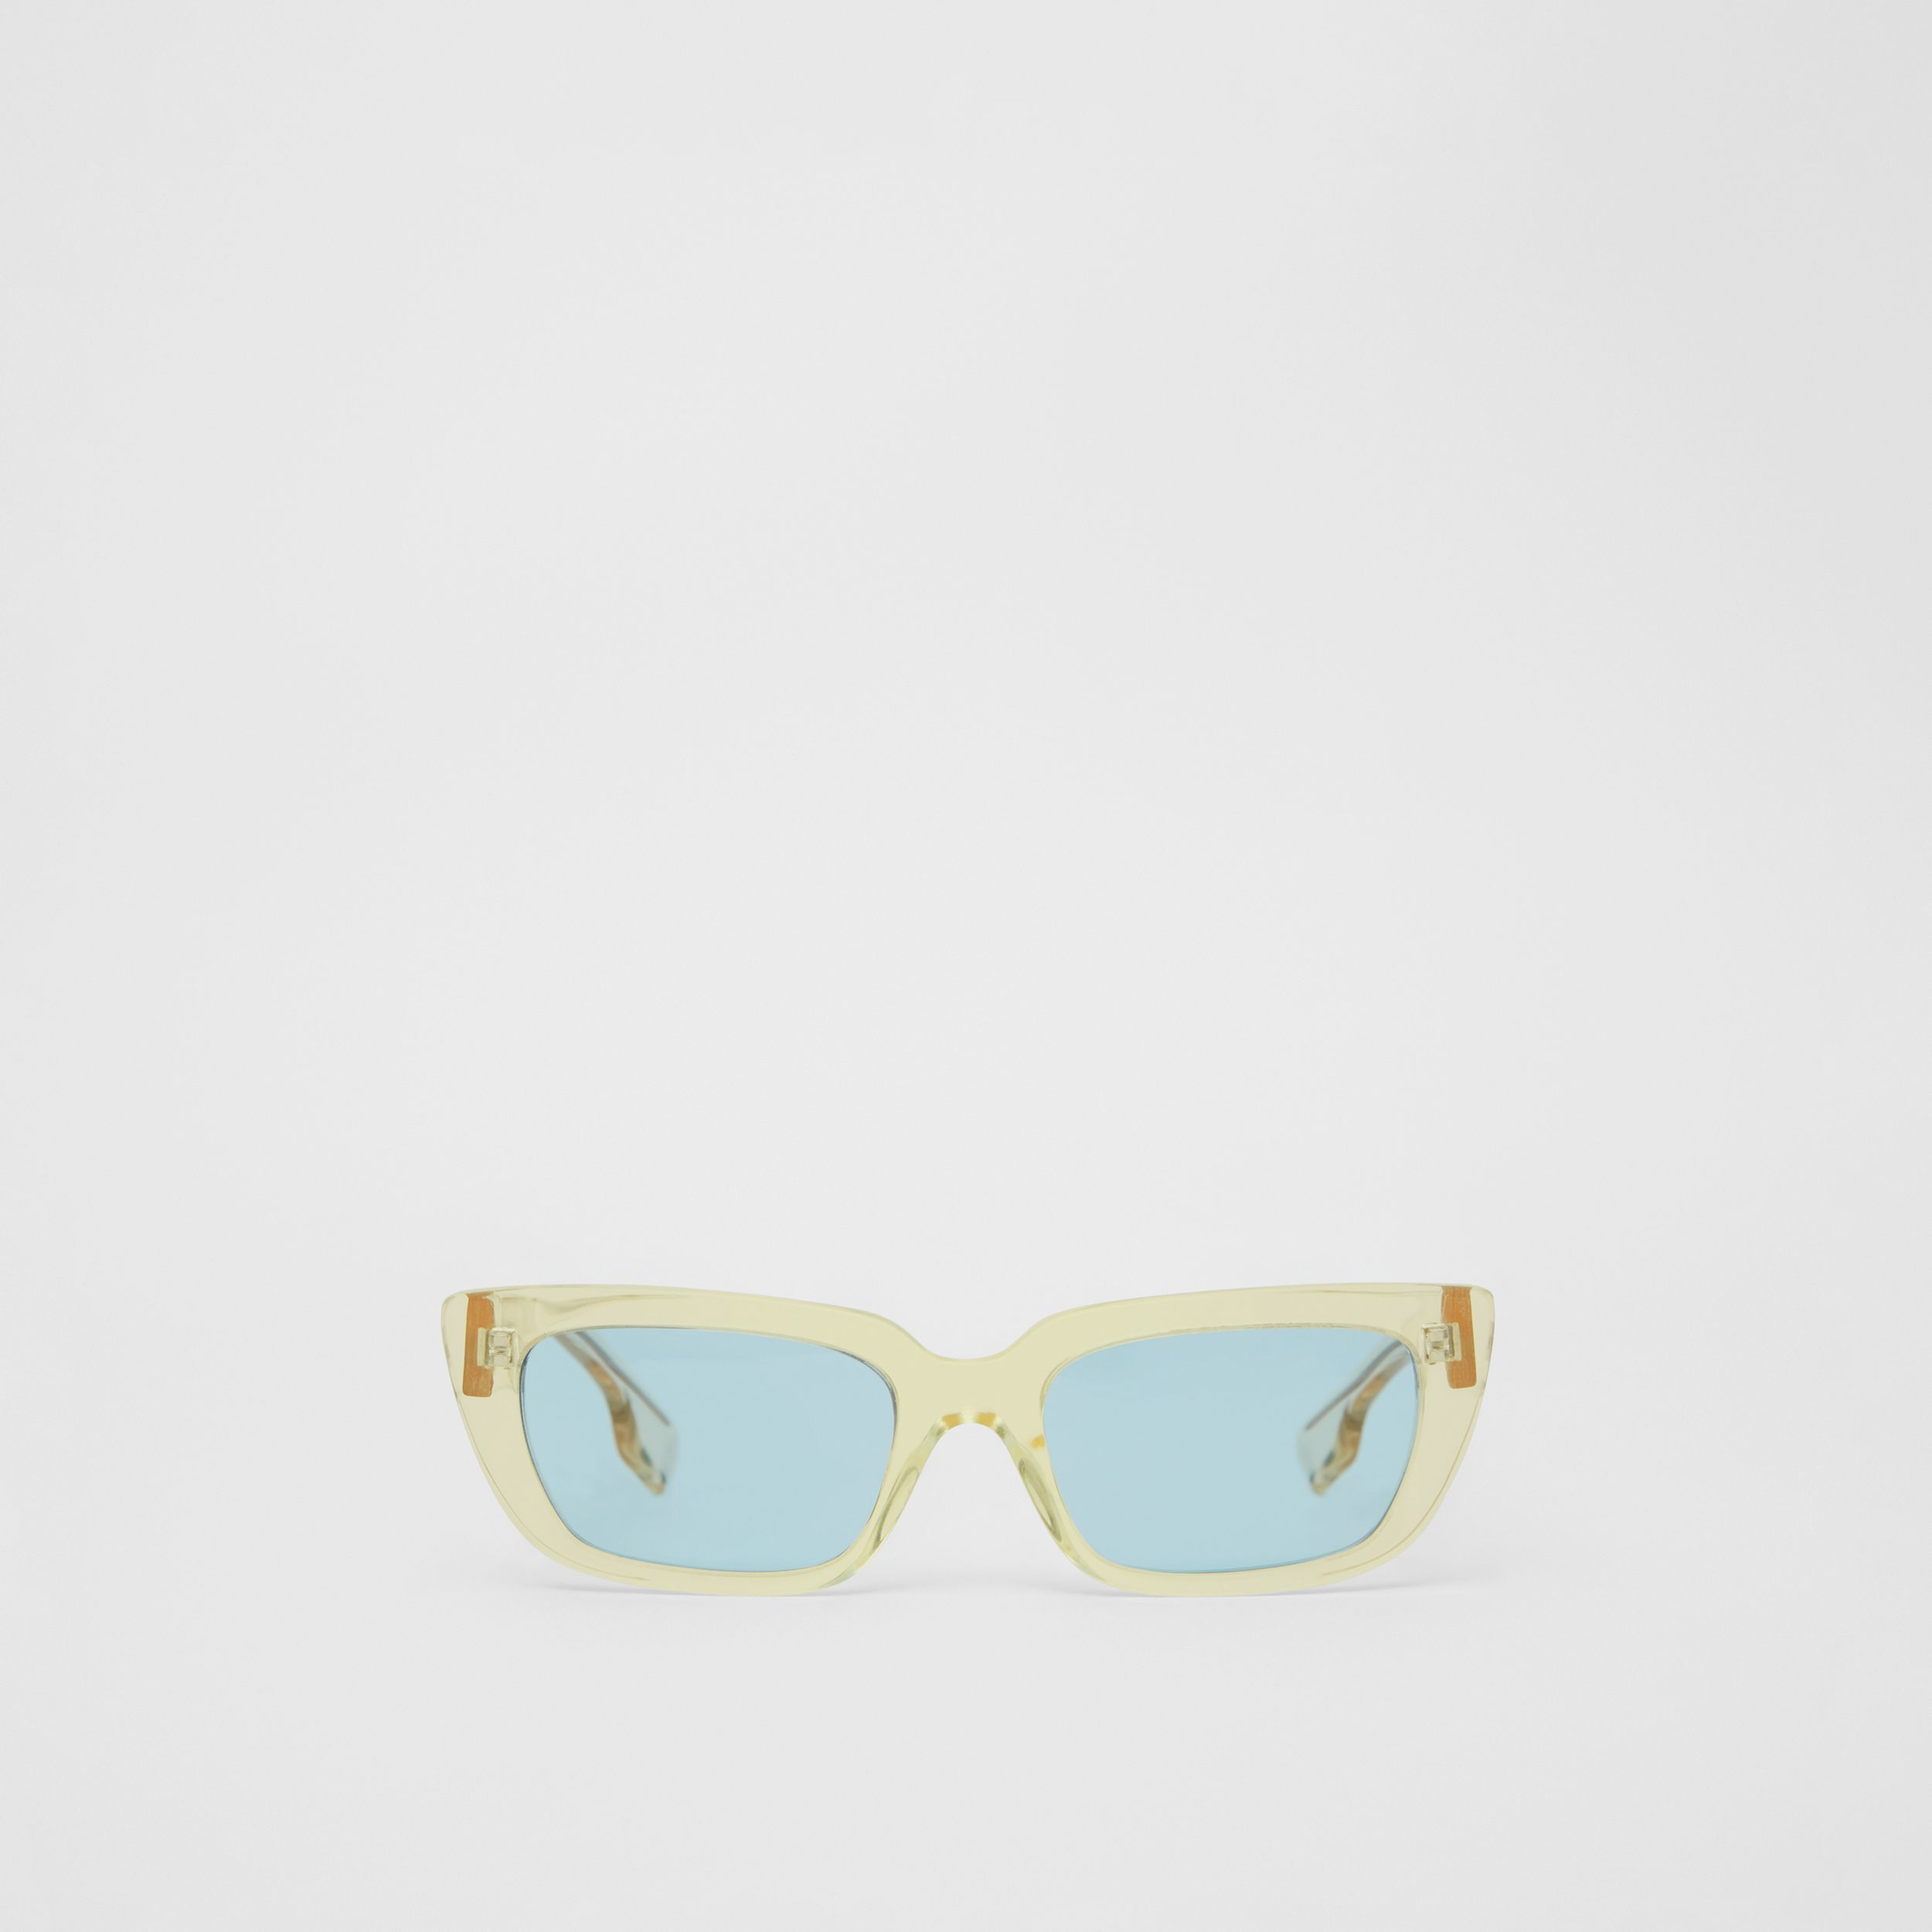 Bio-acetate Rectangular Frame Sunglasses in Pale Yellow - Women | Burberry United Kingdom - 1